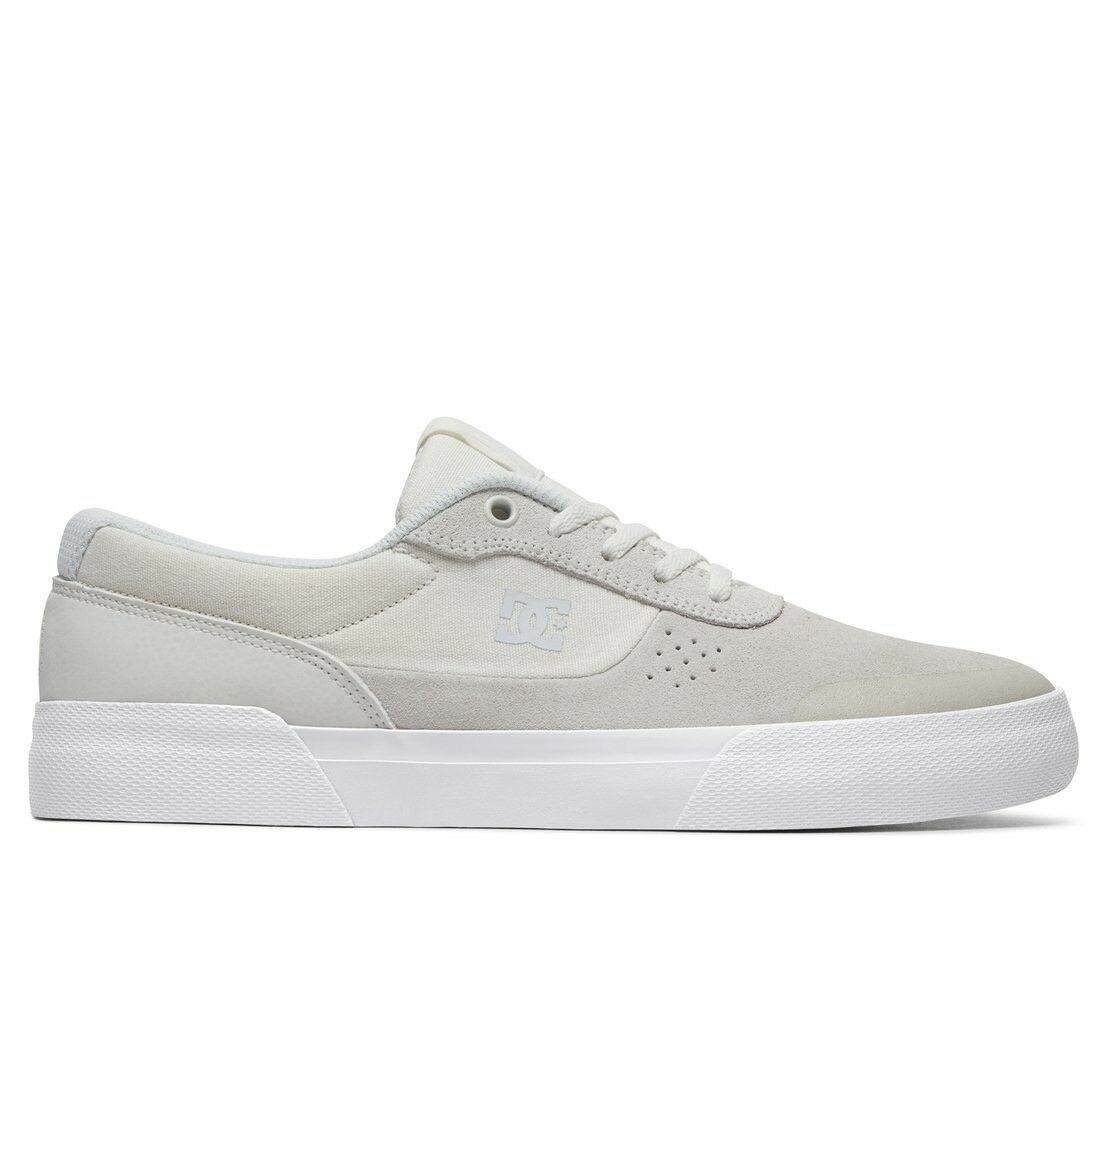 DC S Chaussures SWITCH PLUS S DC Blanc Skate Baskets 824329